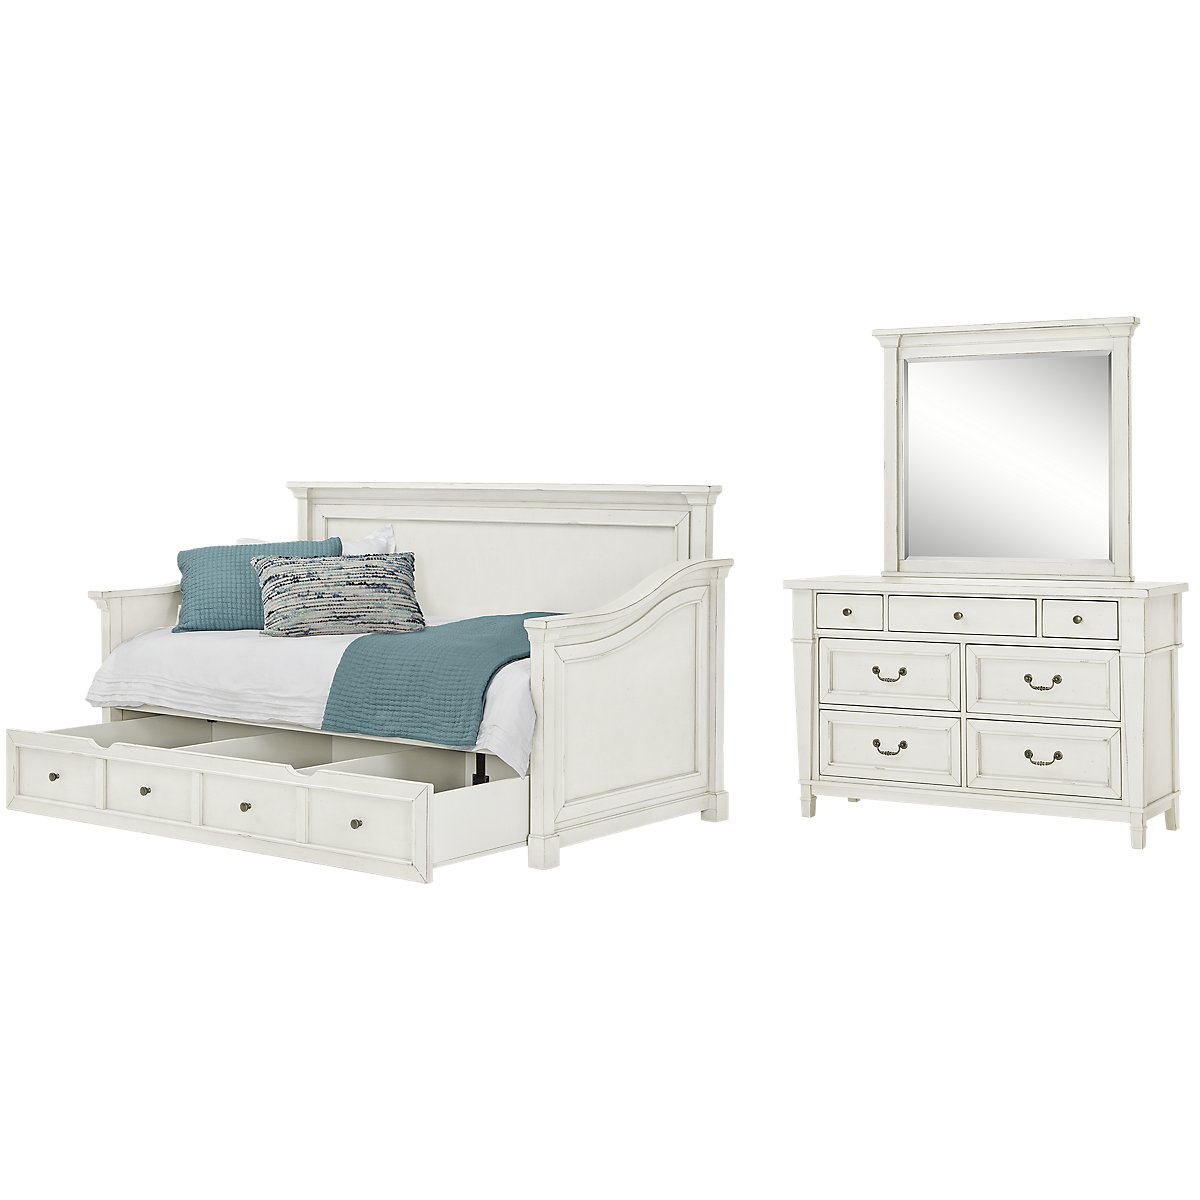 City furniture stoney white daybed storage bedroom for White bedroom set with storage